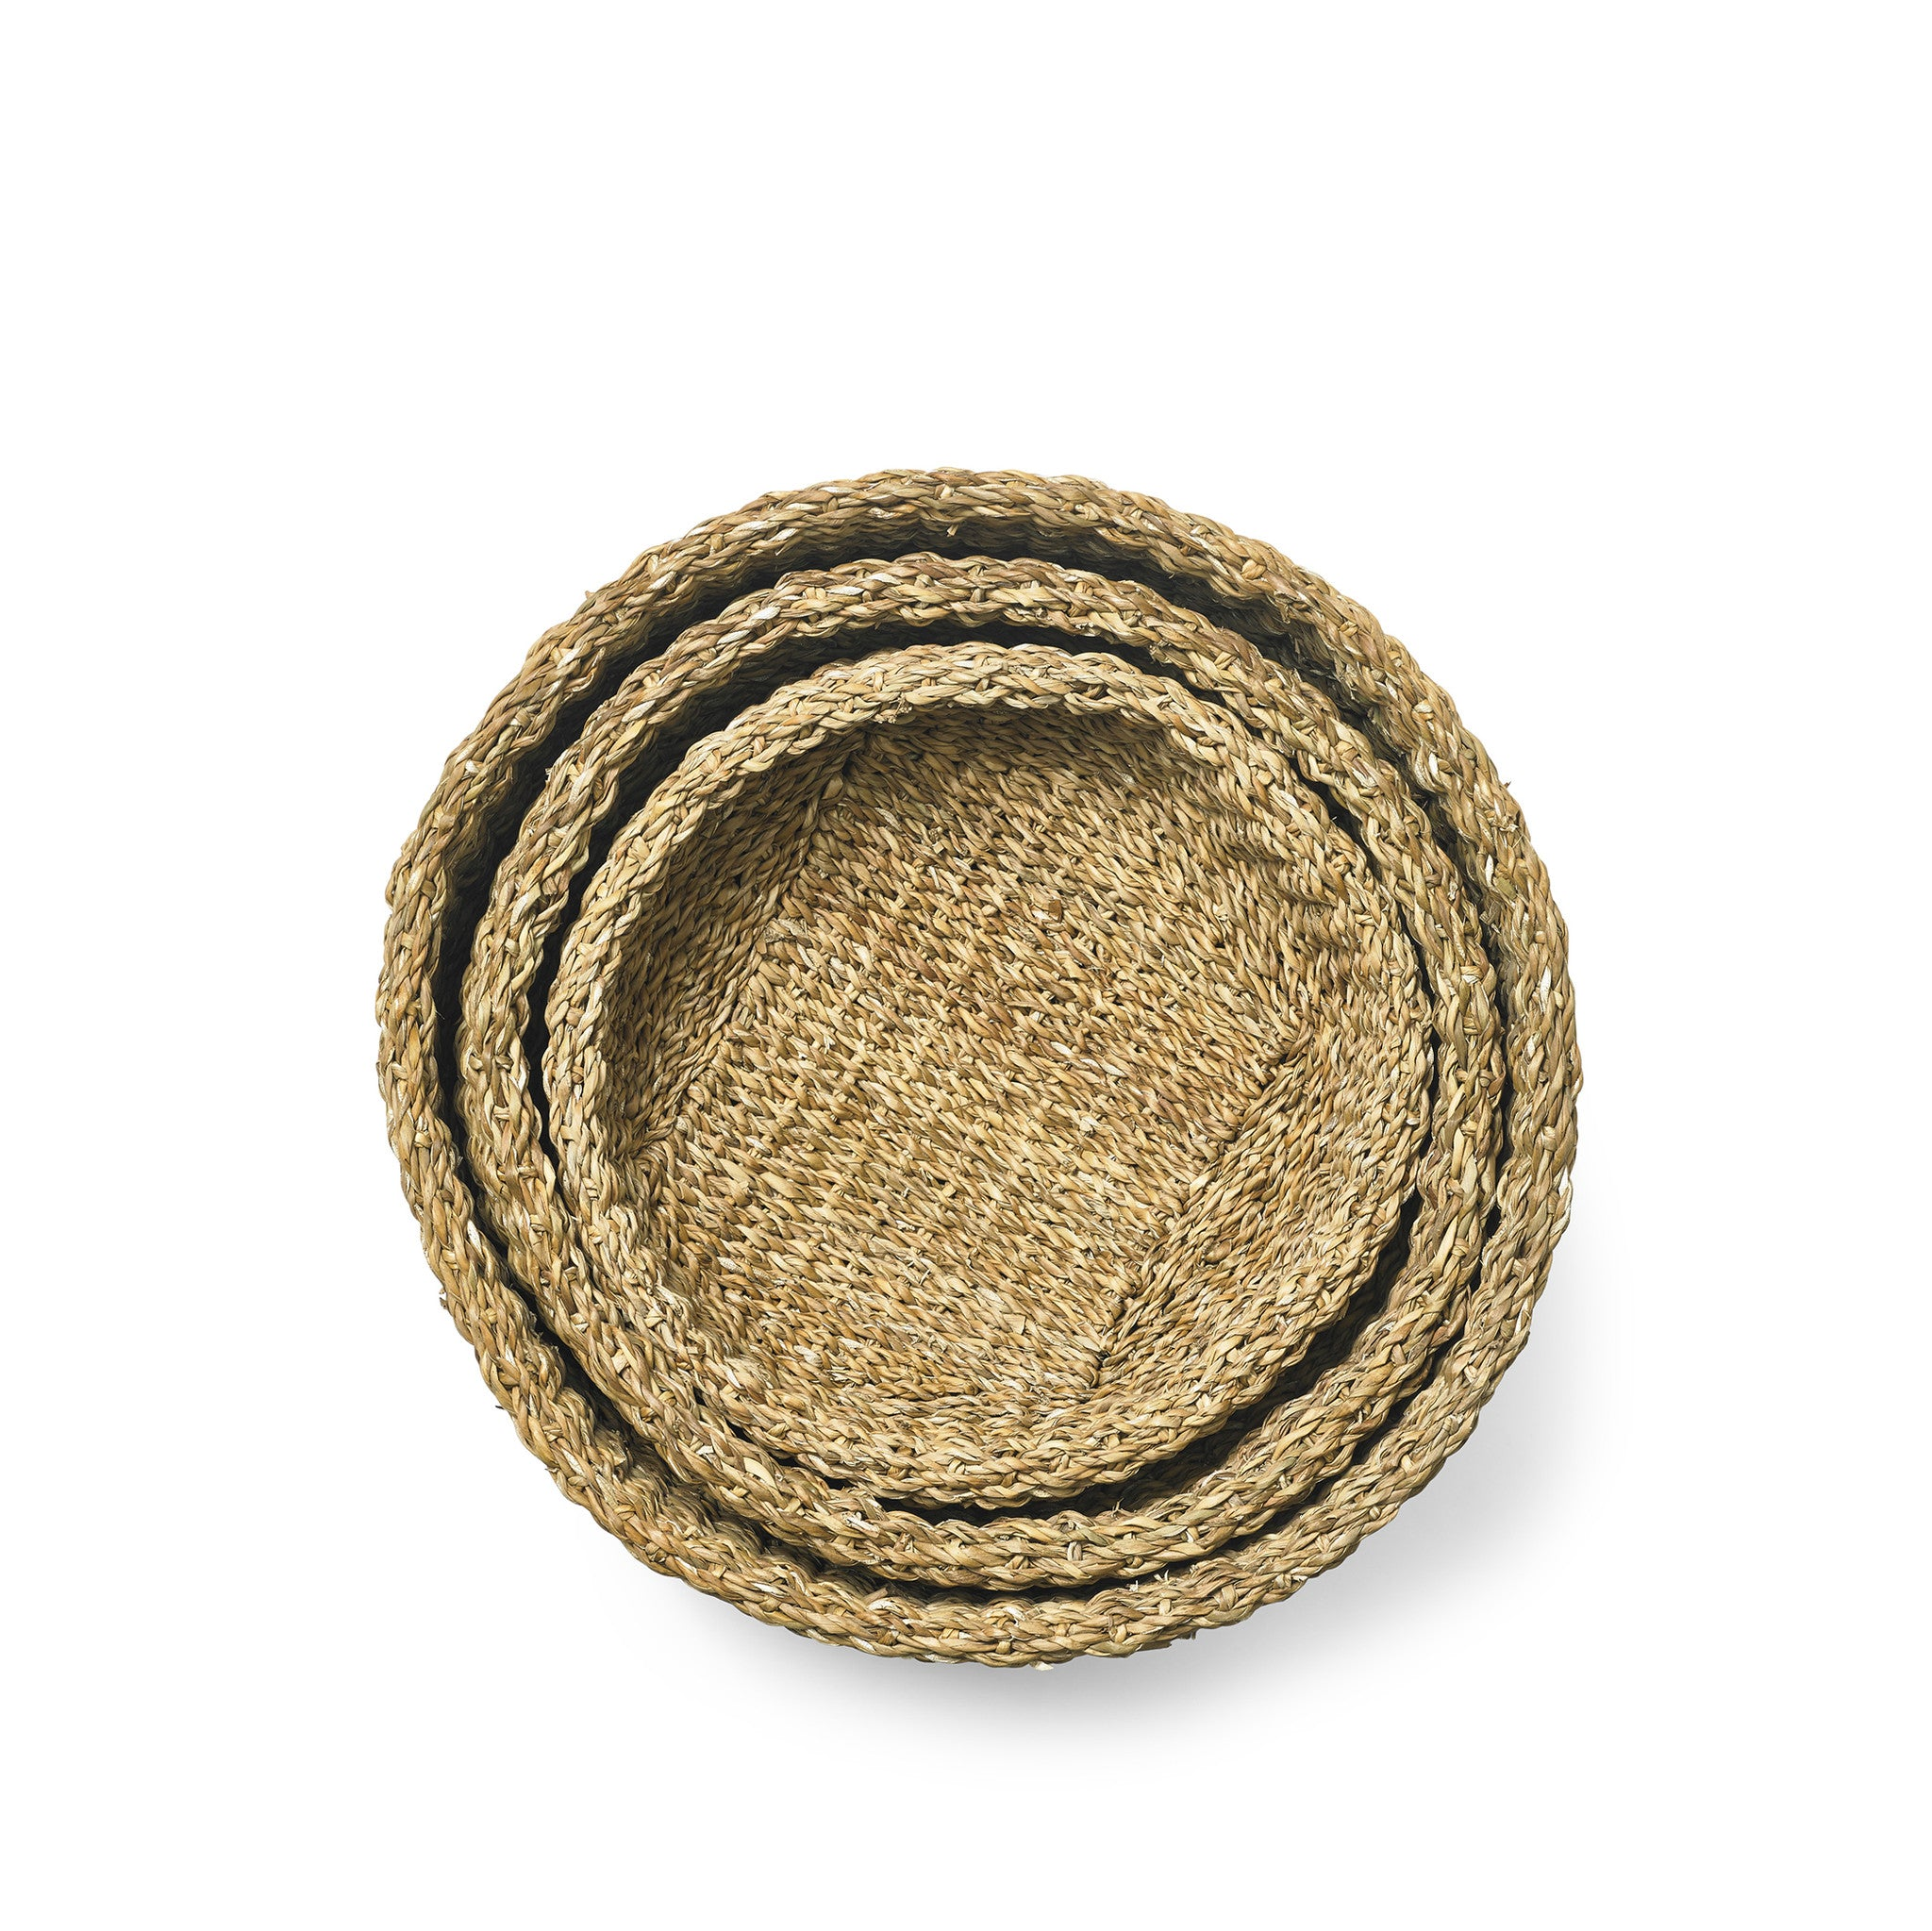 Seagrass and Coconut Fibre Basket, Large